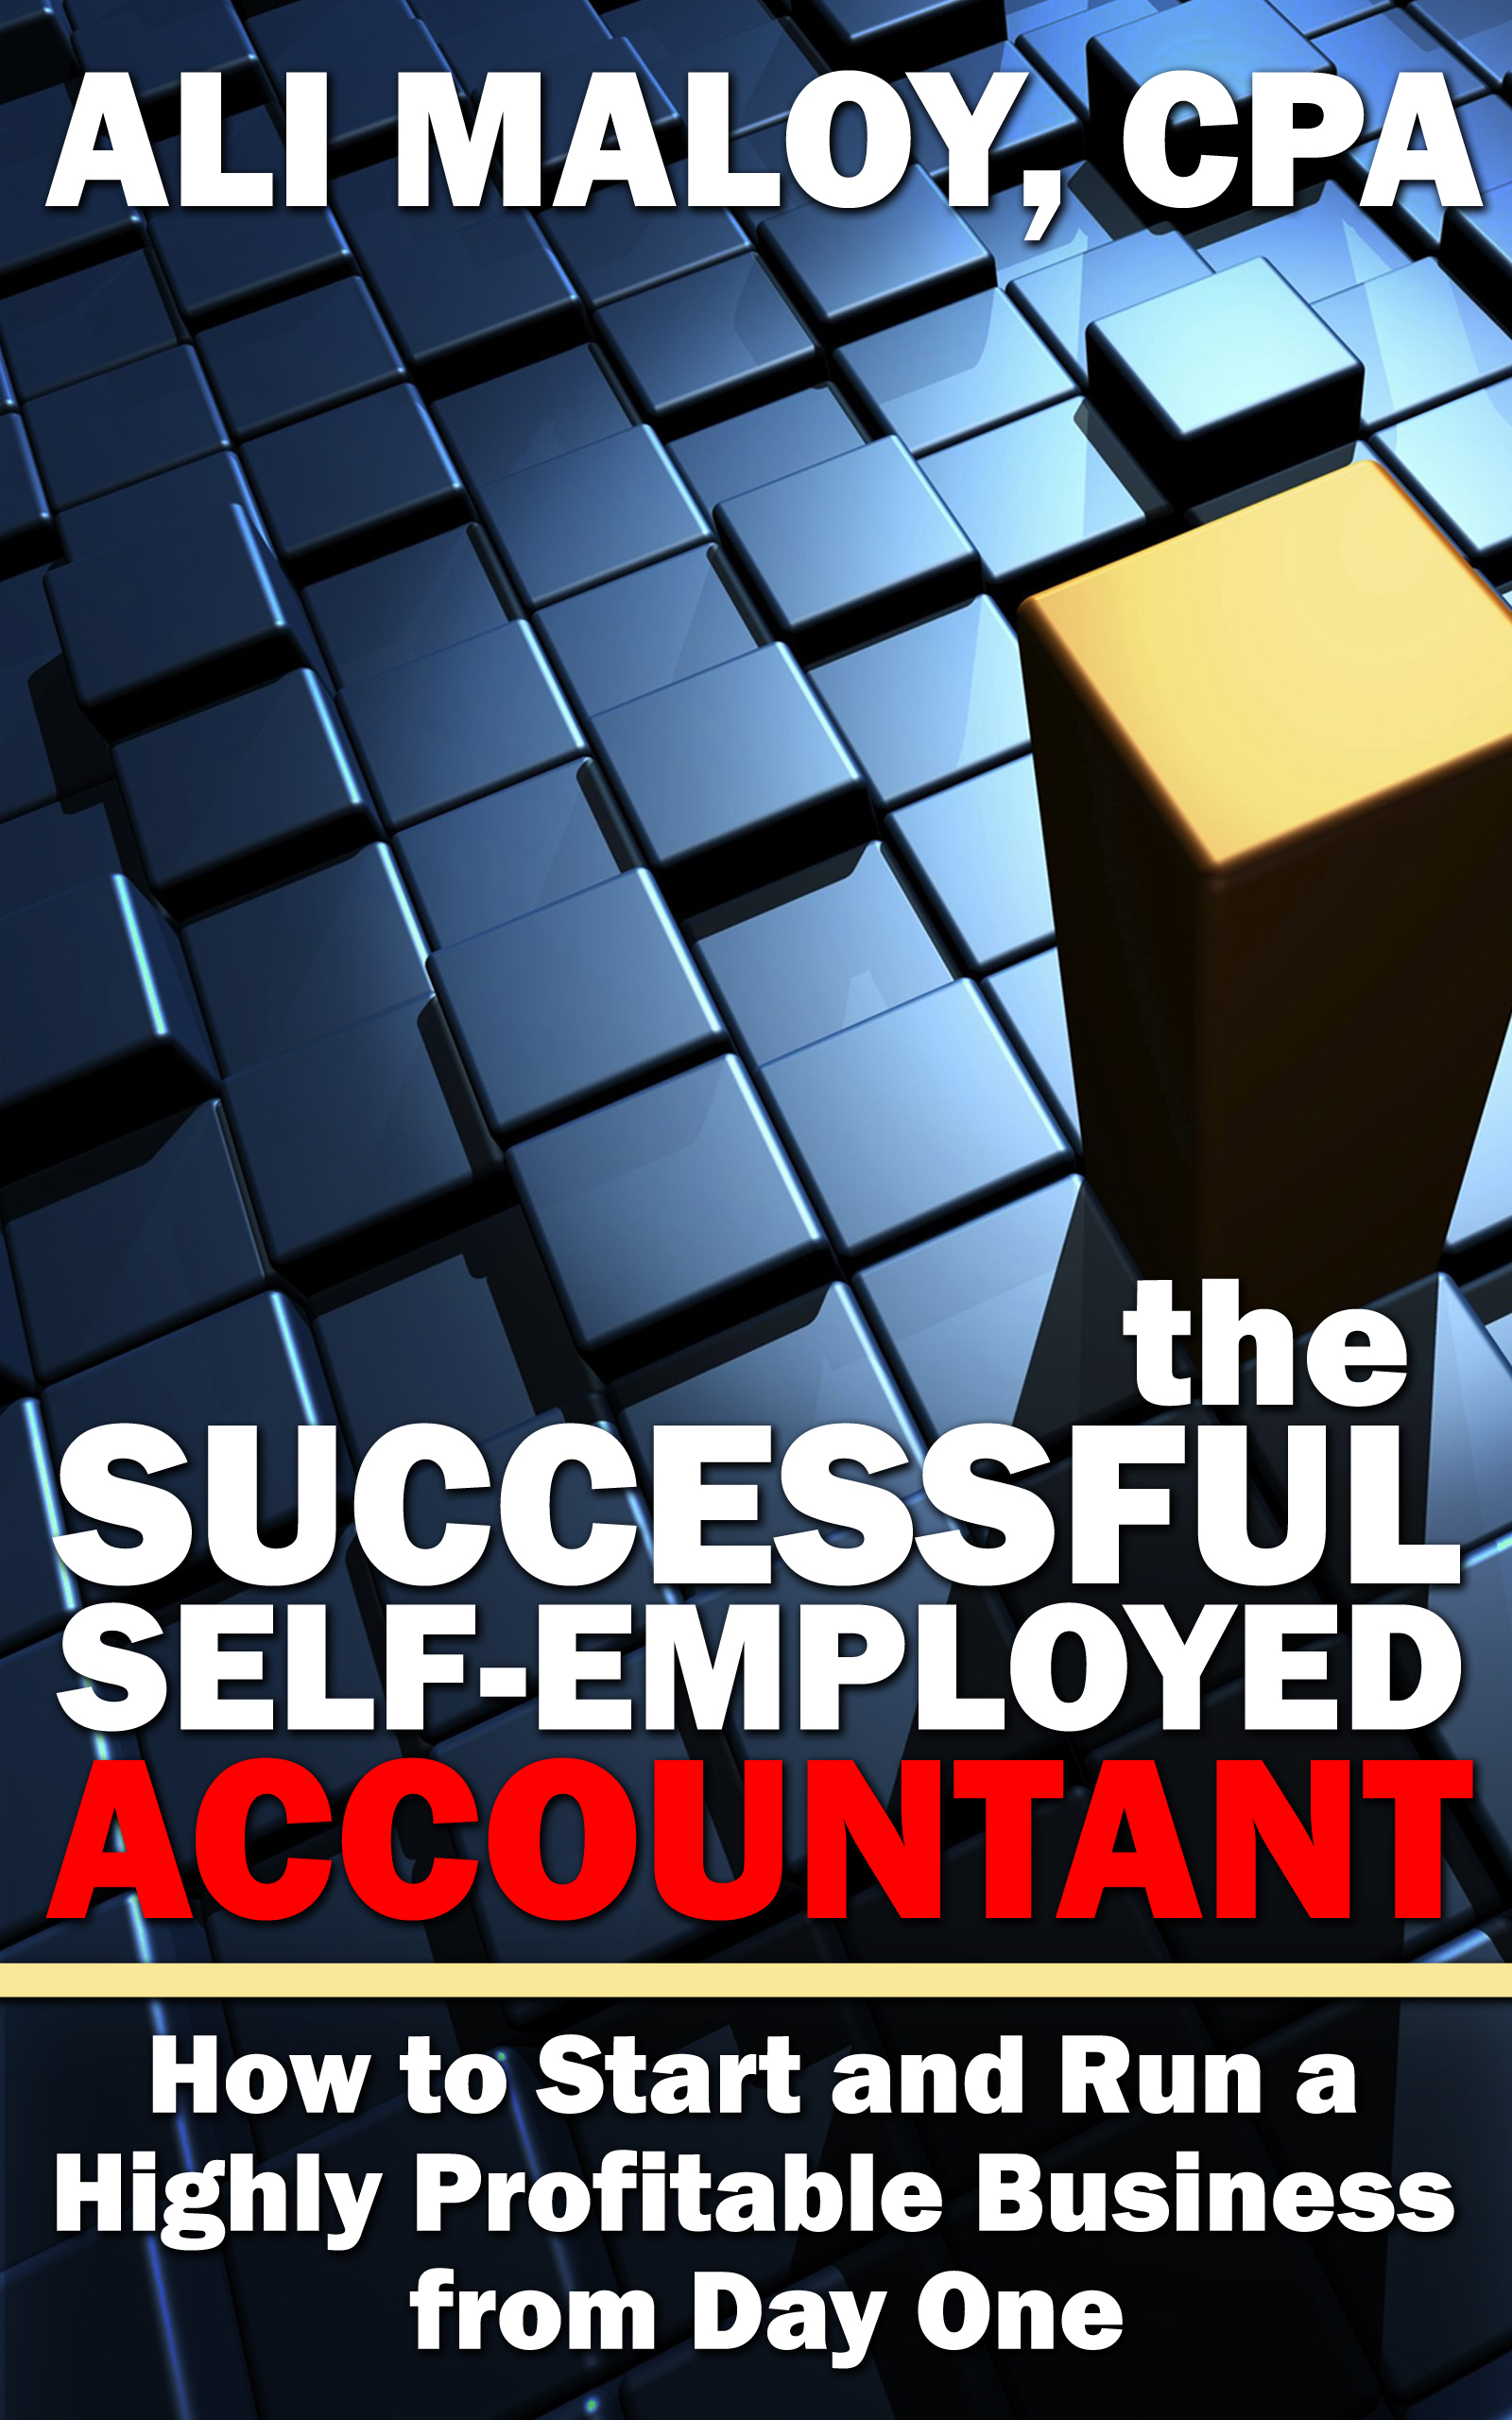 The Successful Self-Employed Accountant: How to Start and Run a Highly Profitable Business from Day One